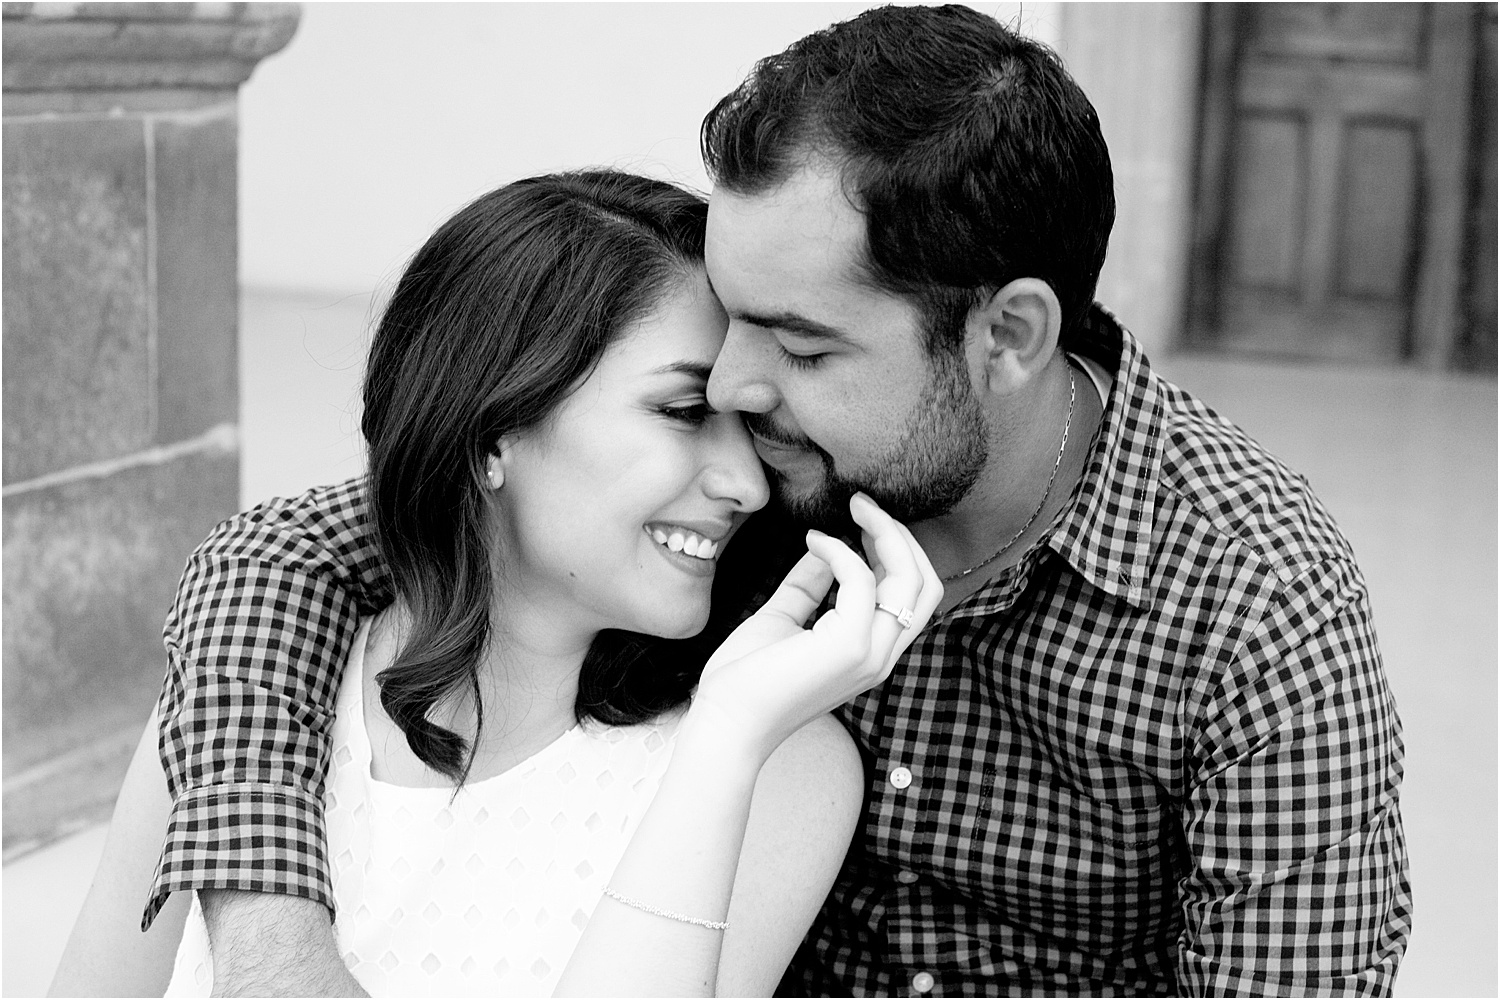 15 - Guide to the Best Poses for Engagement Photos